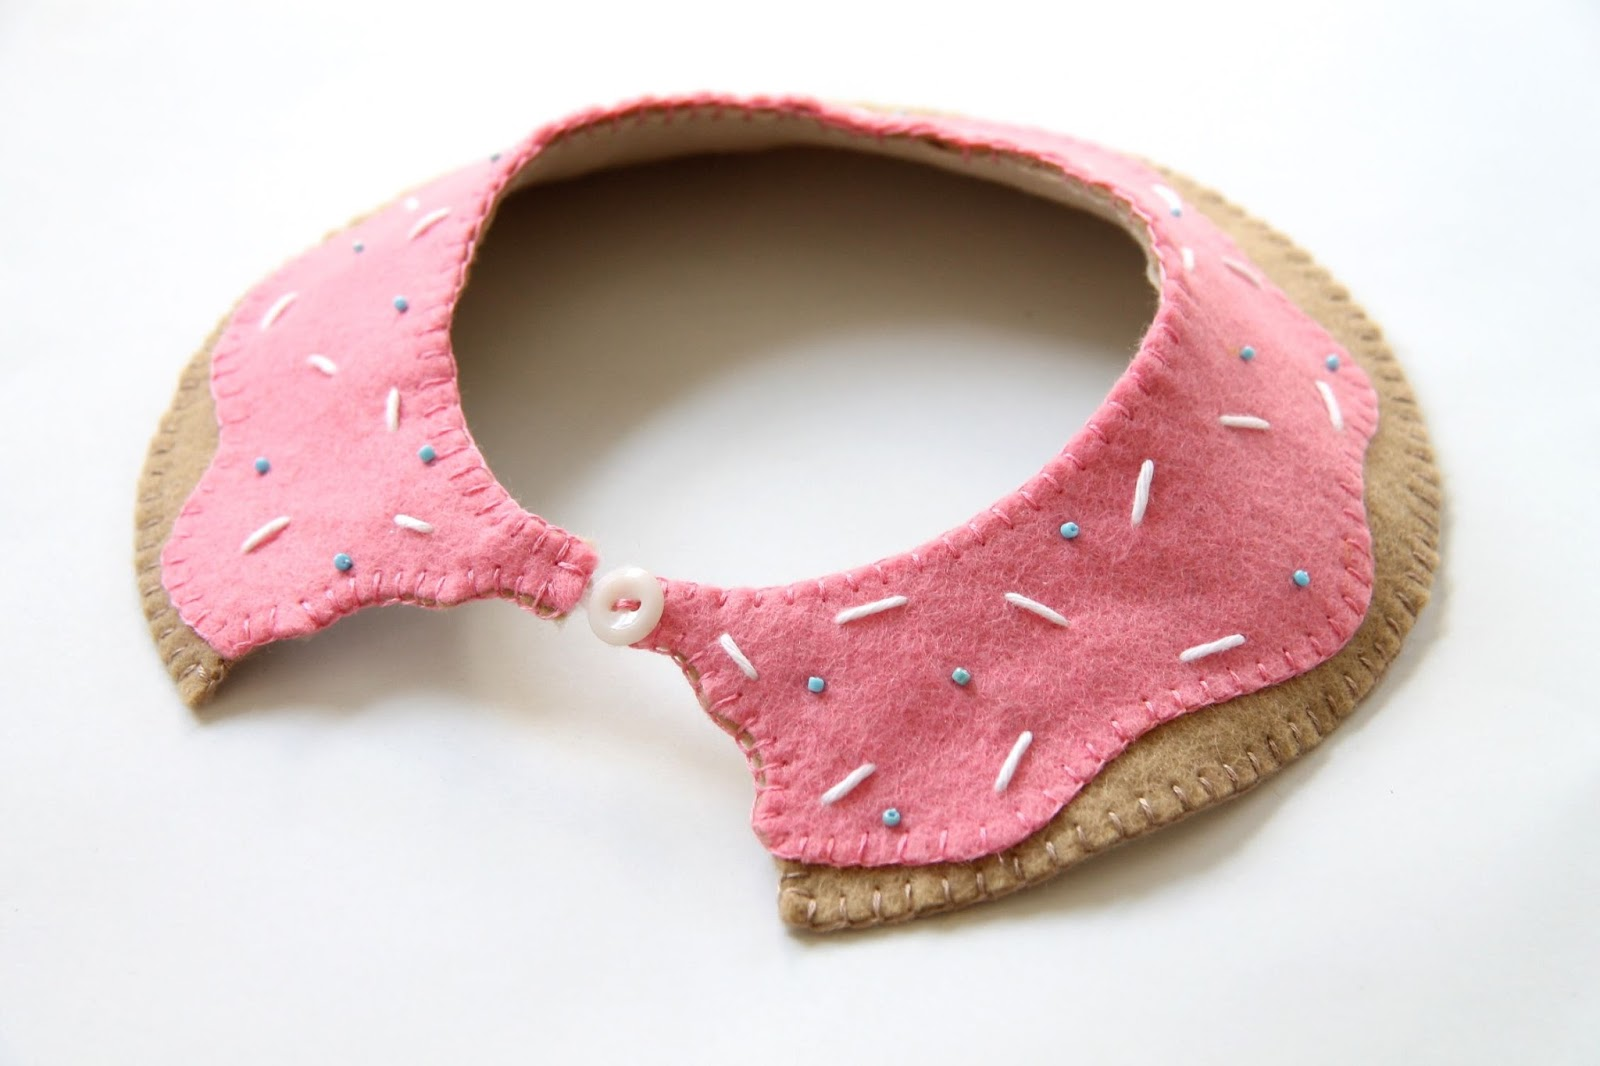 completed DIY Donut collar tutorial